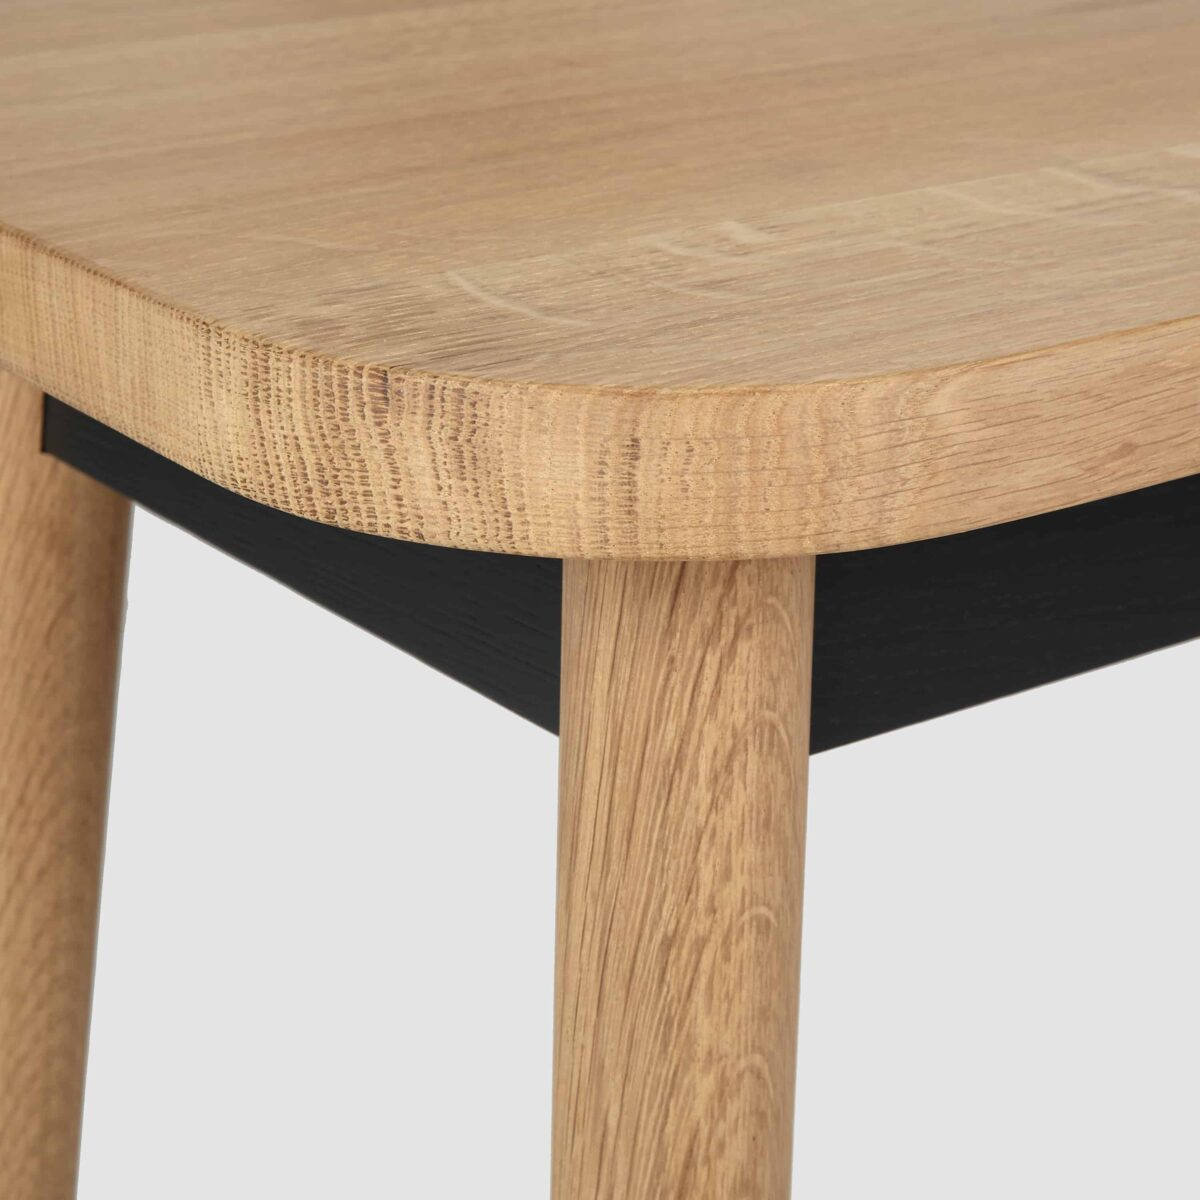 semley-bench-small-oak-another-country-002